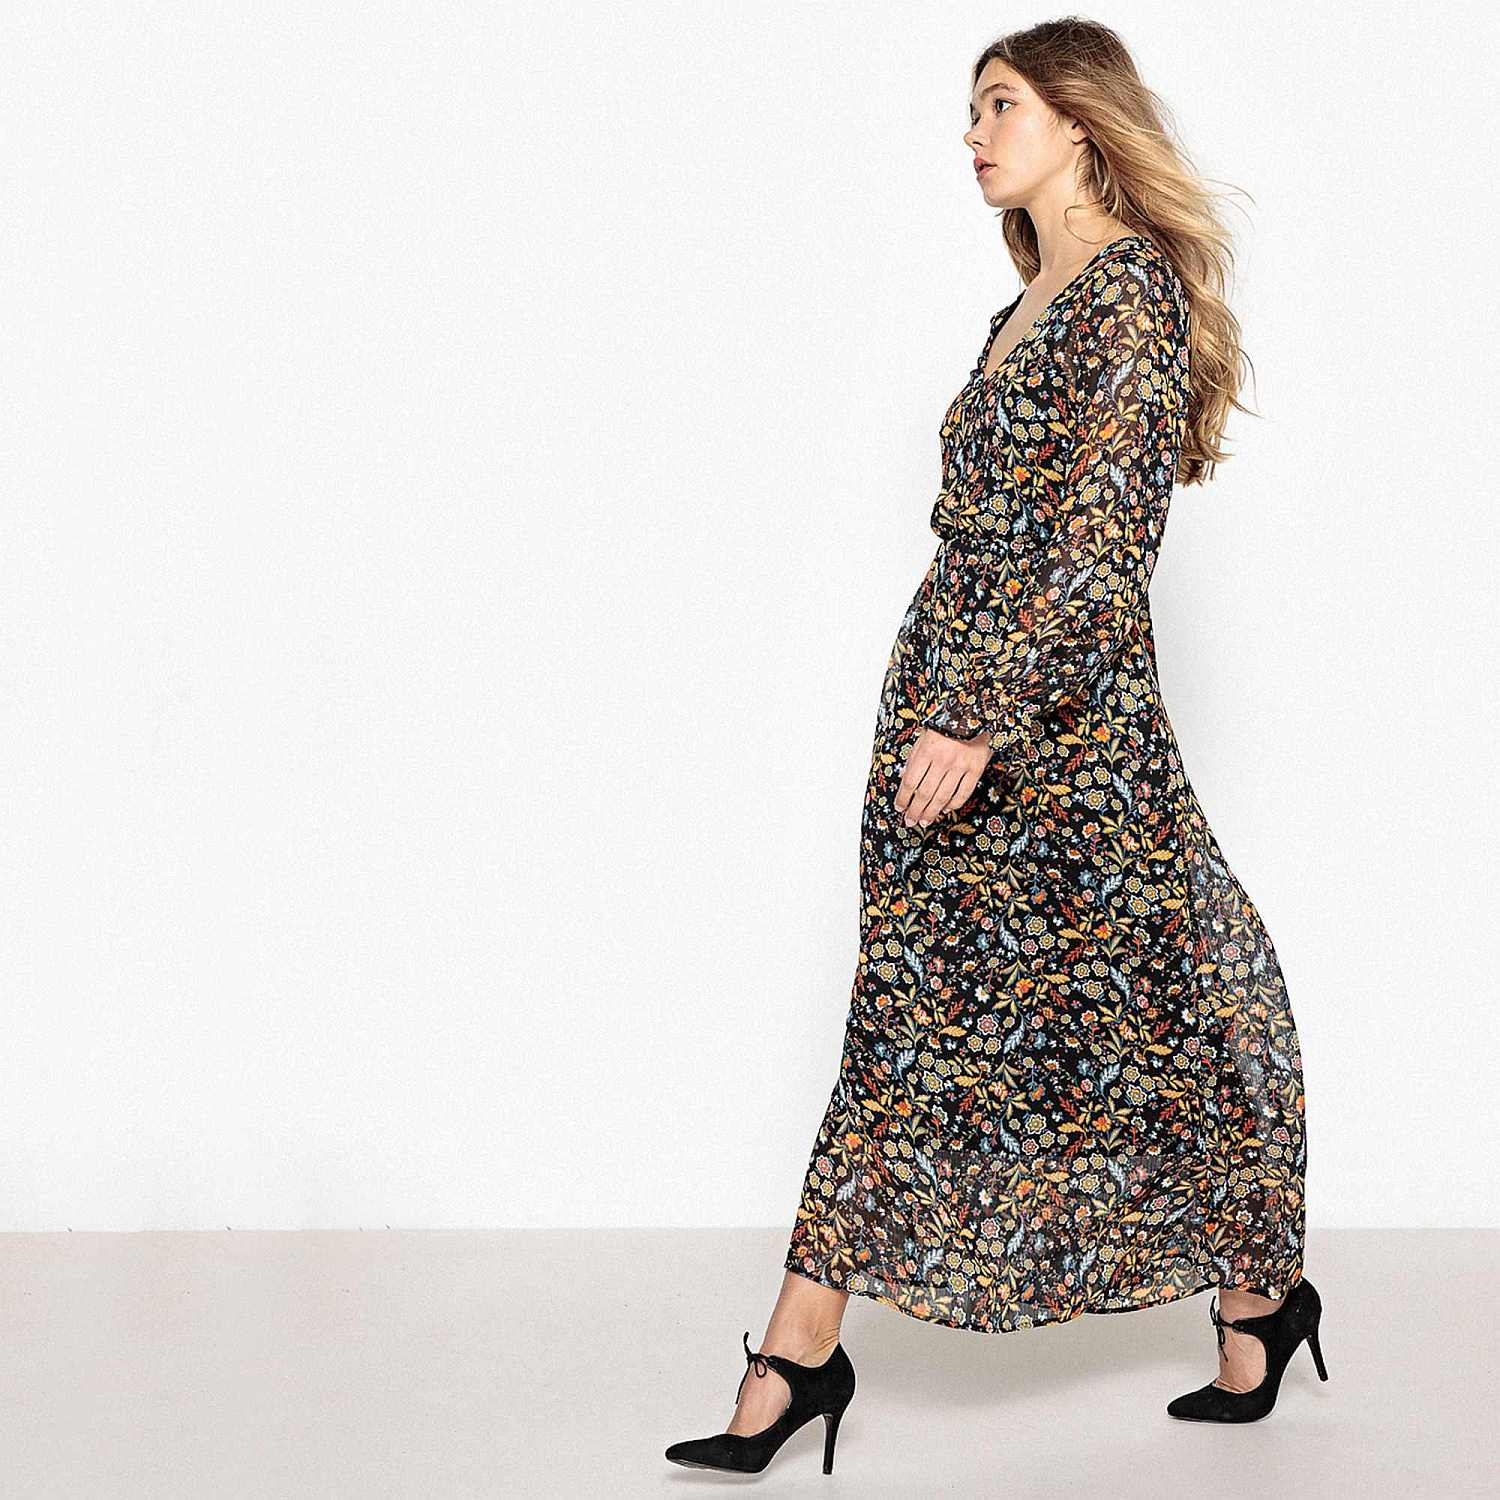 Model wearing La Redoute Floral Print Folk Dress and Black Ankle Tie Leather Heels